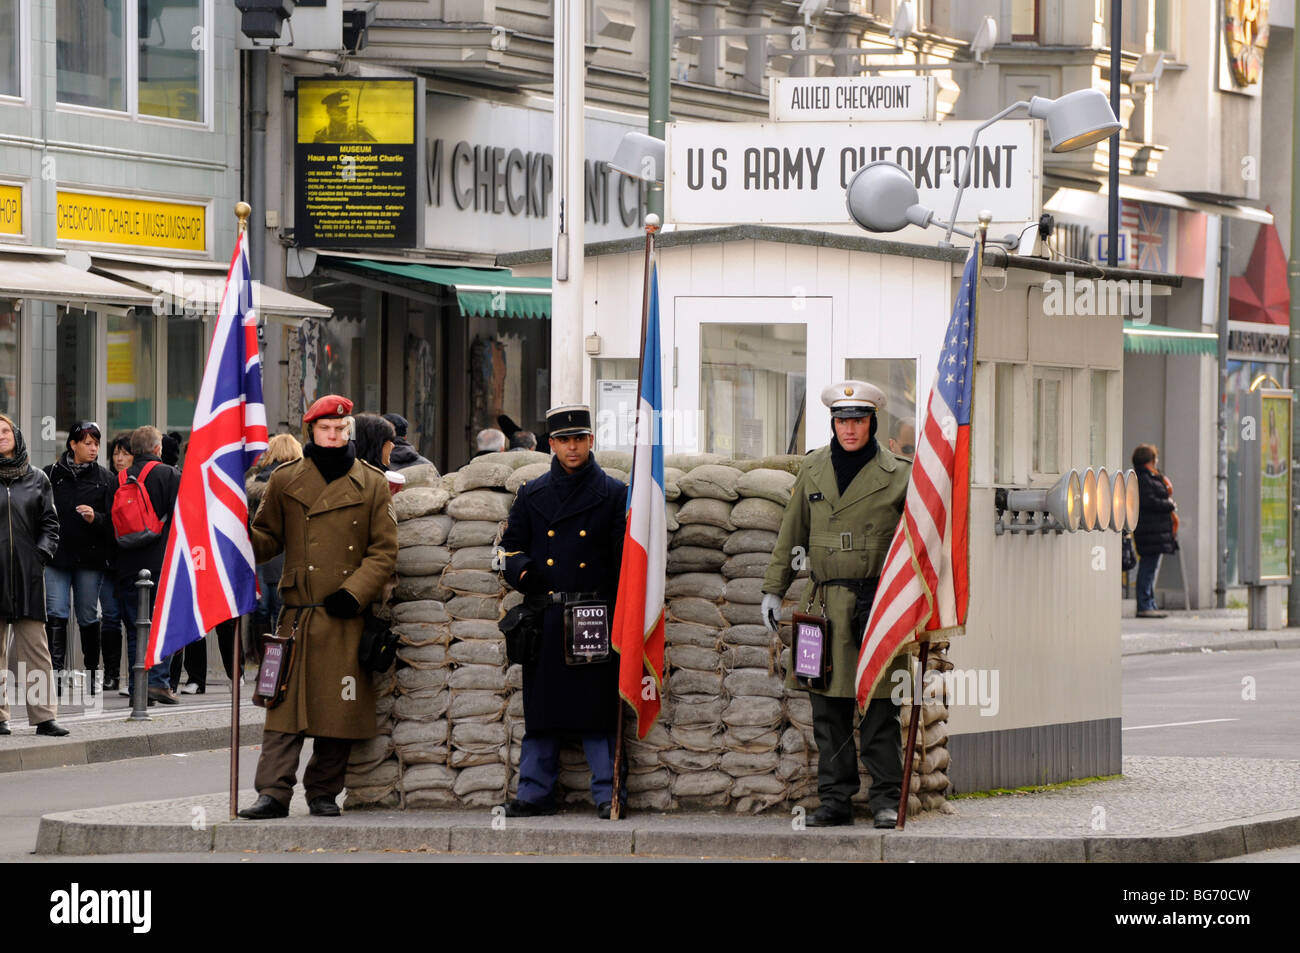 US Army checkpoint tourist stand, Checkpoint Charlie, Berlin. - Stock Image